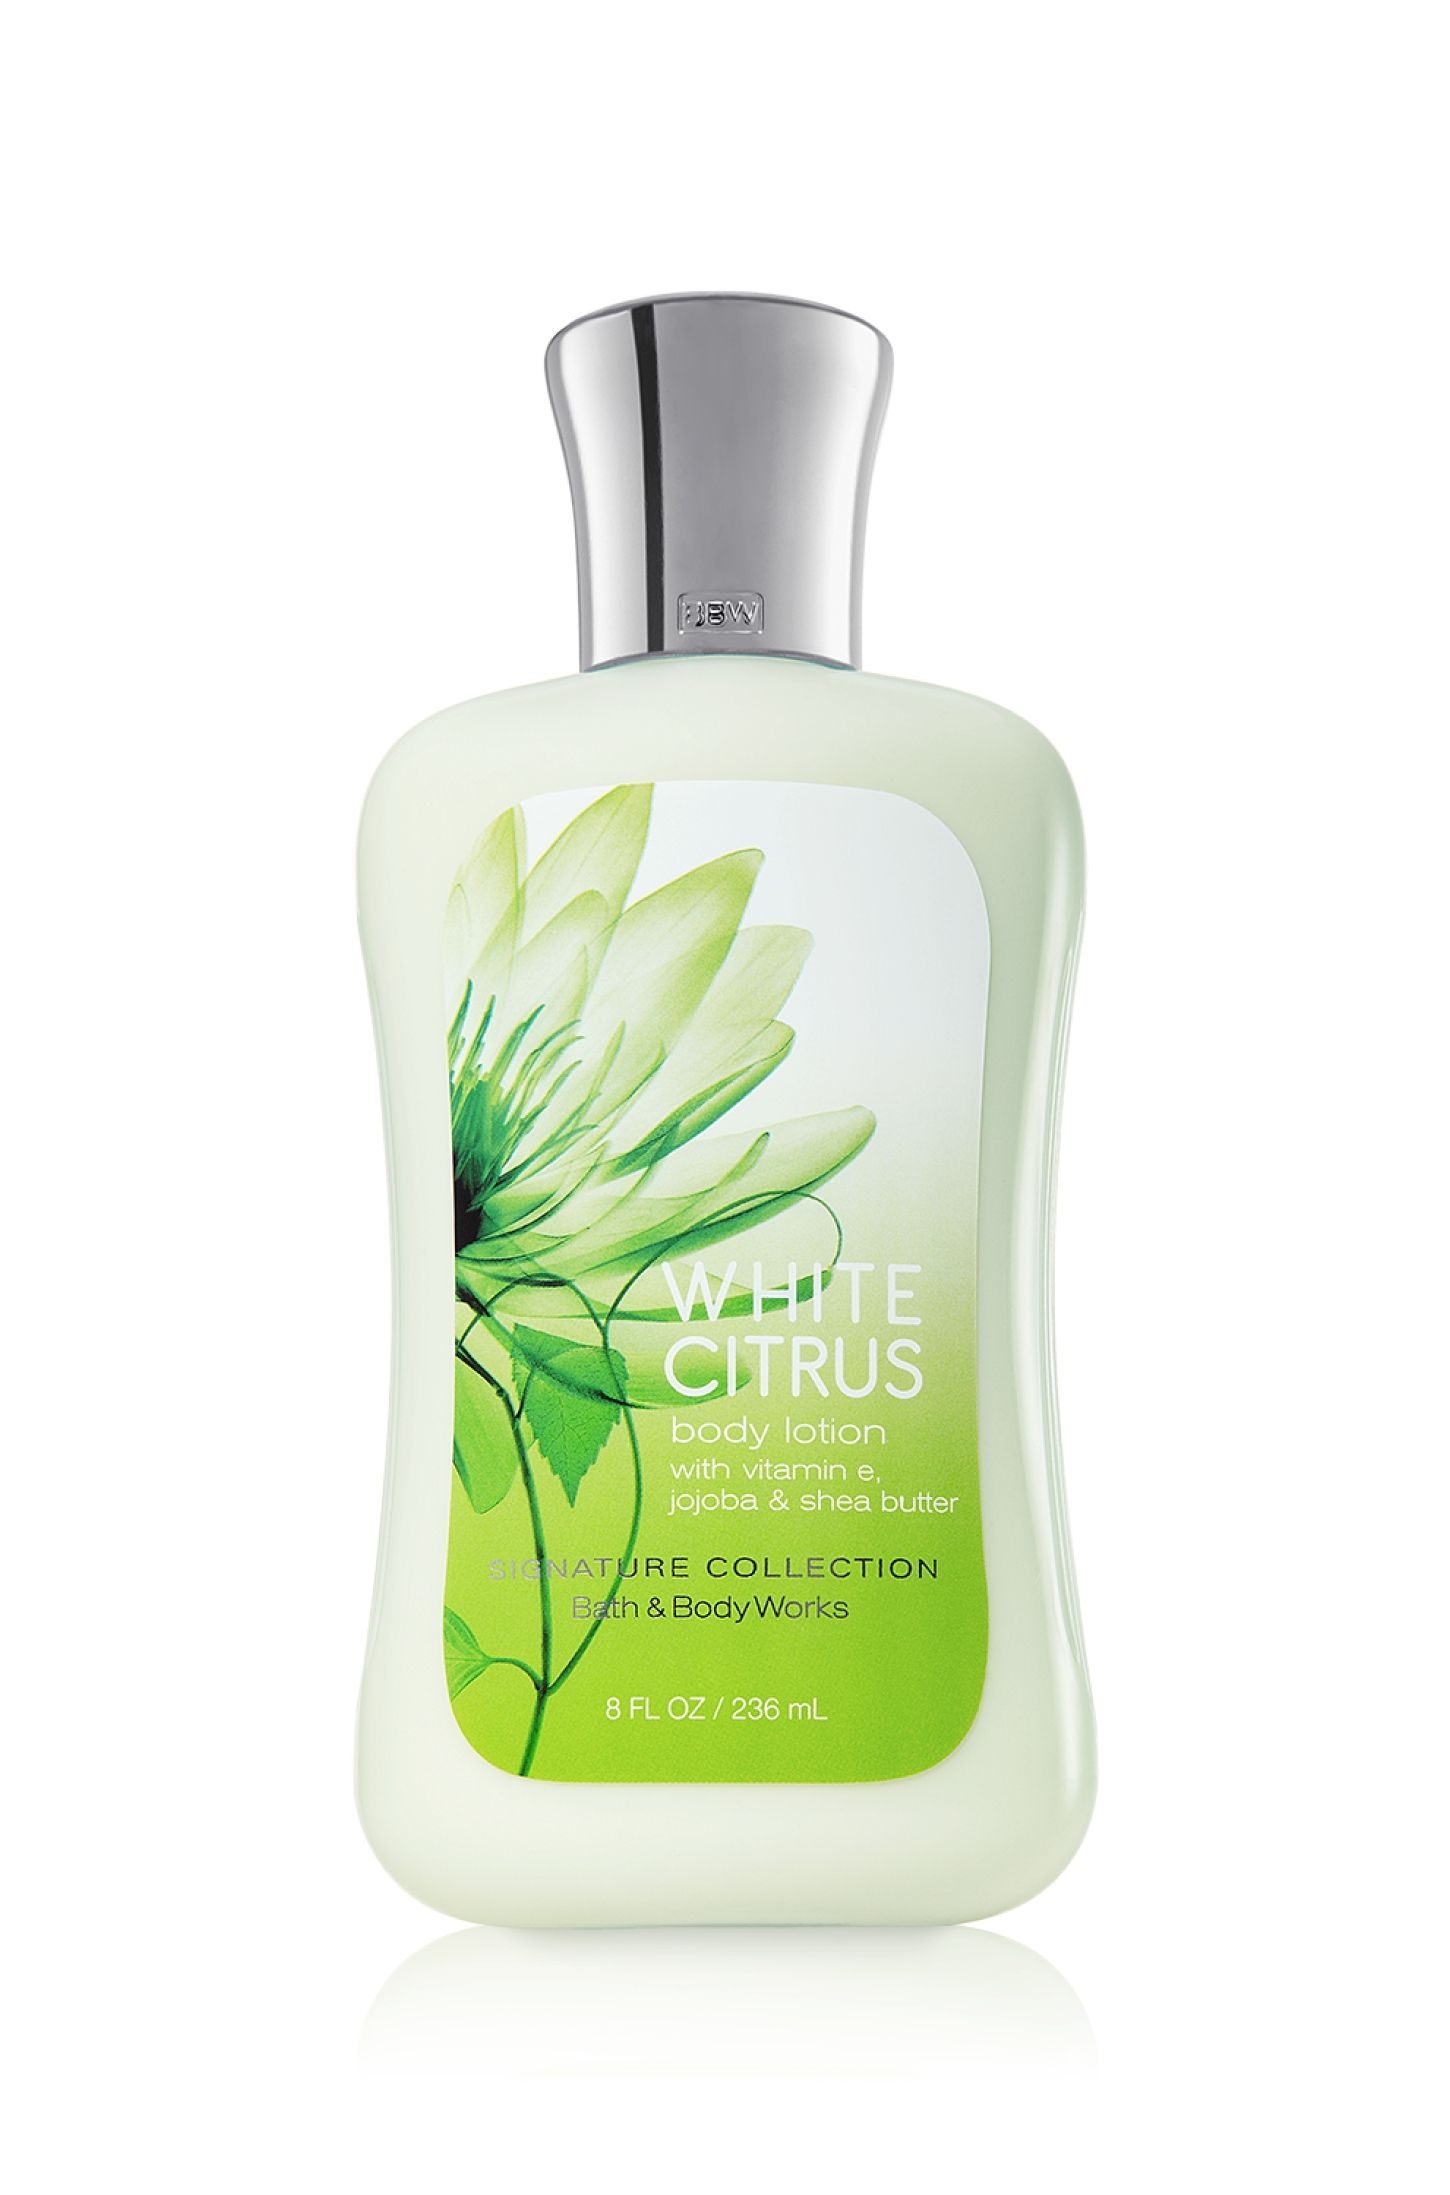 White Citrus Body Lotion - Signature Collection - Bath & Body Works